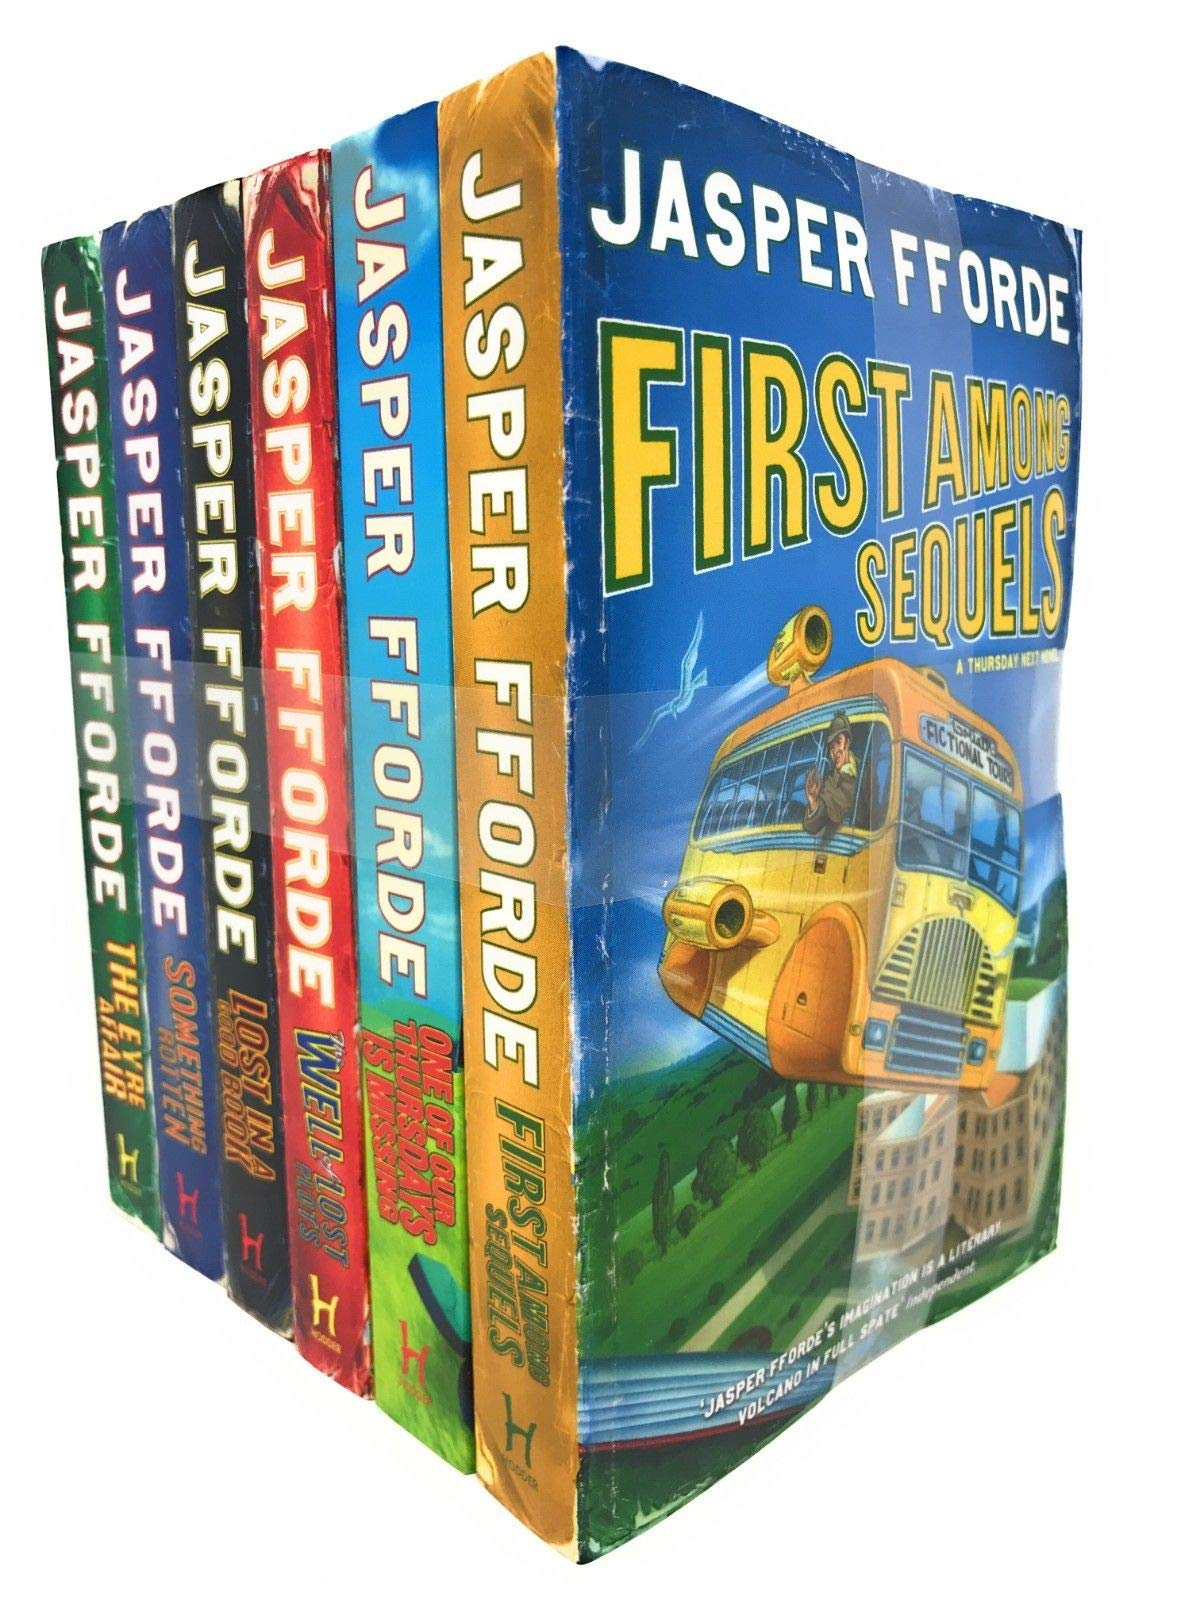 """The Well Of Lost Plots"" by Jasper Fforde (2003)"